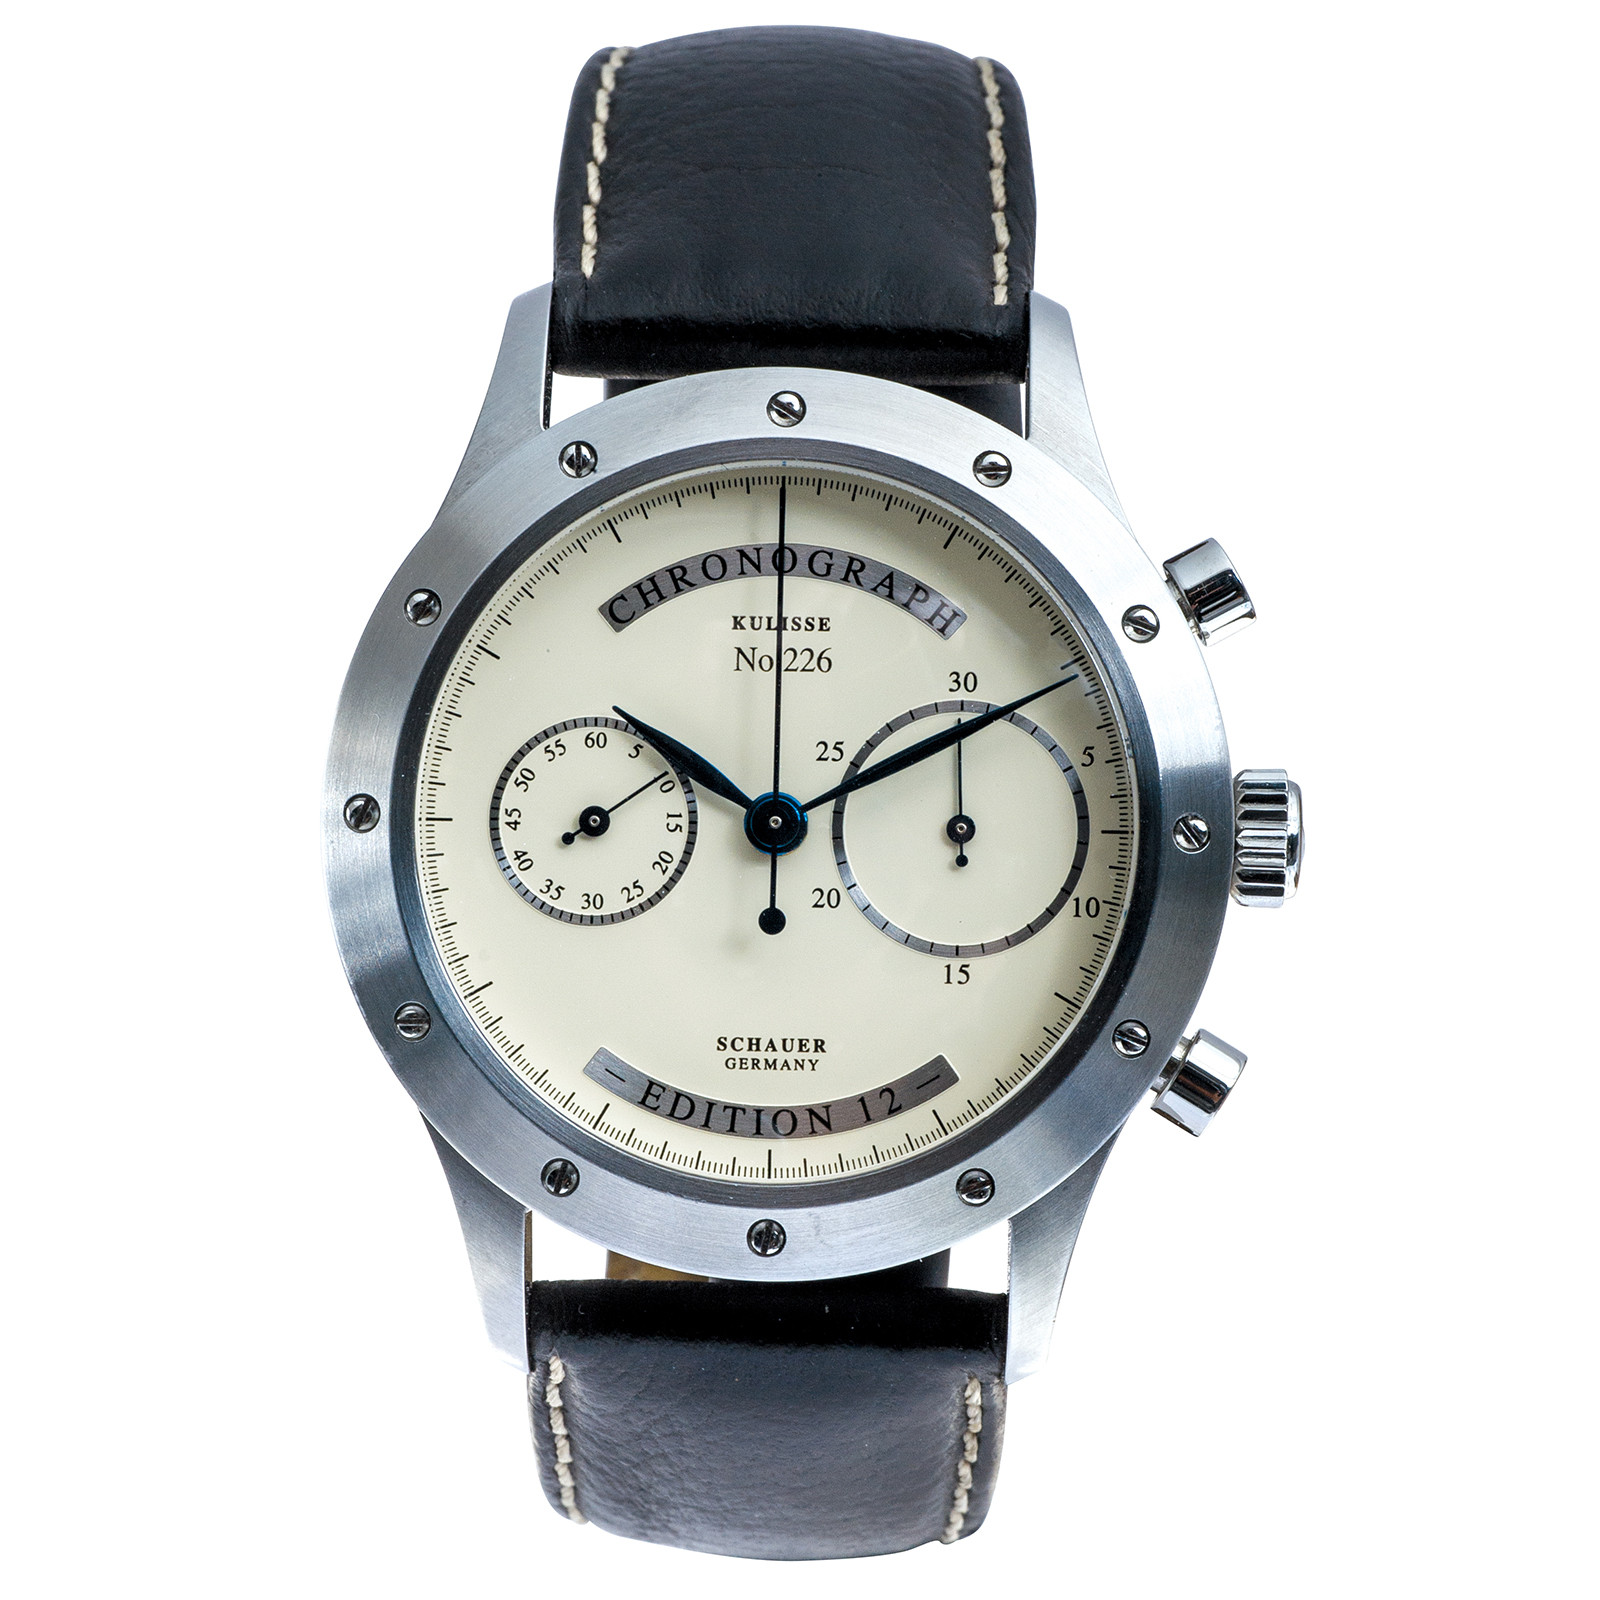 schauer en infos bild normal co stowa gmbh watches kg awards edition silver